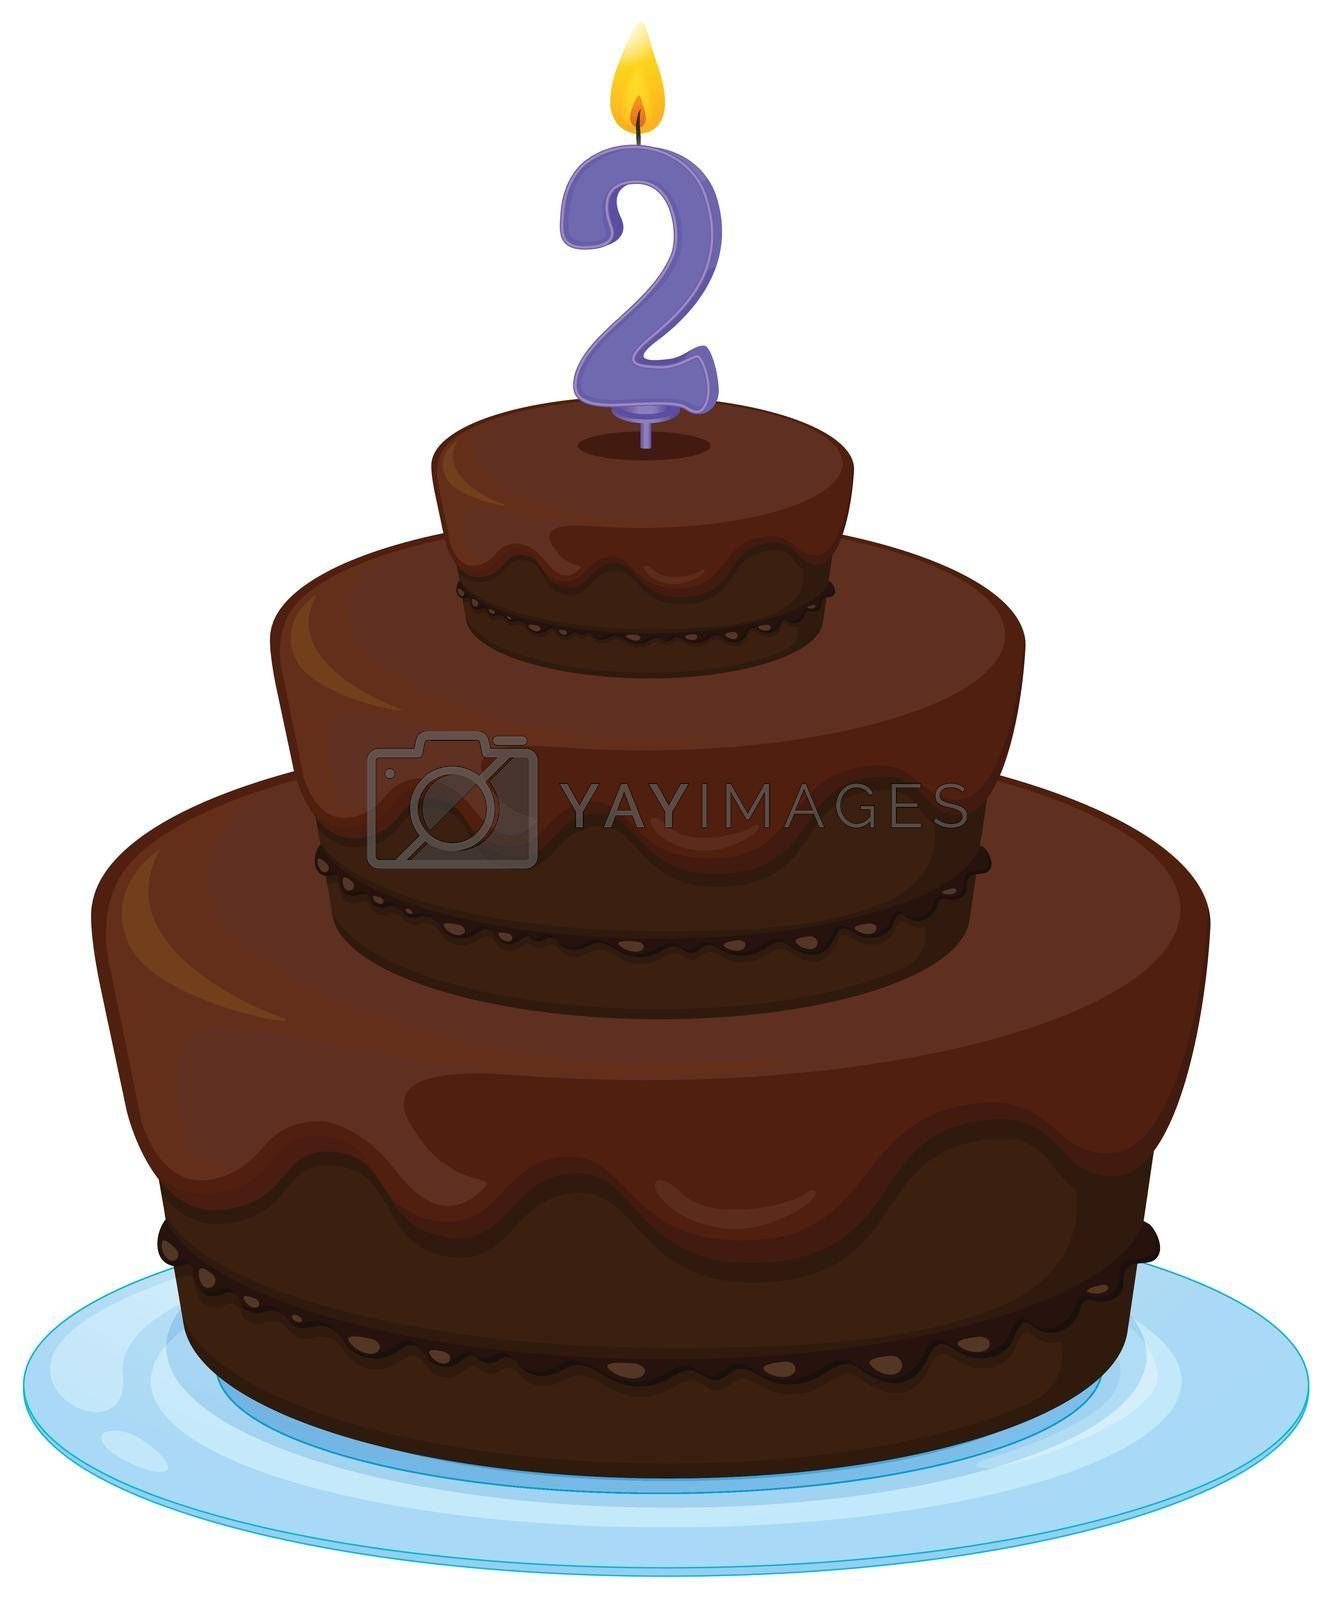 illustration of a brown birthday cake on a white background